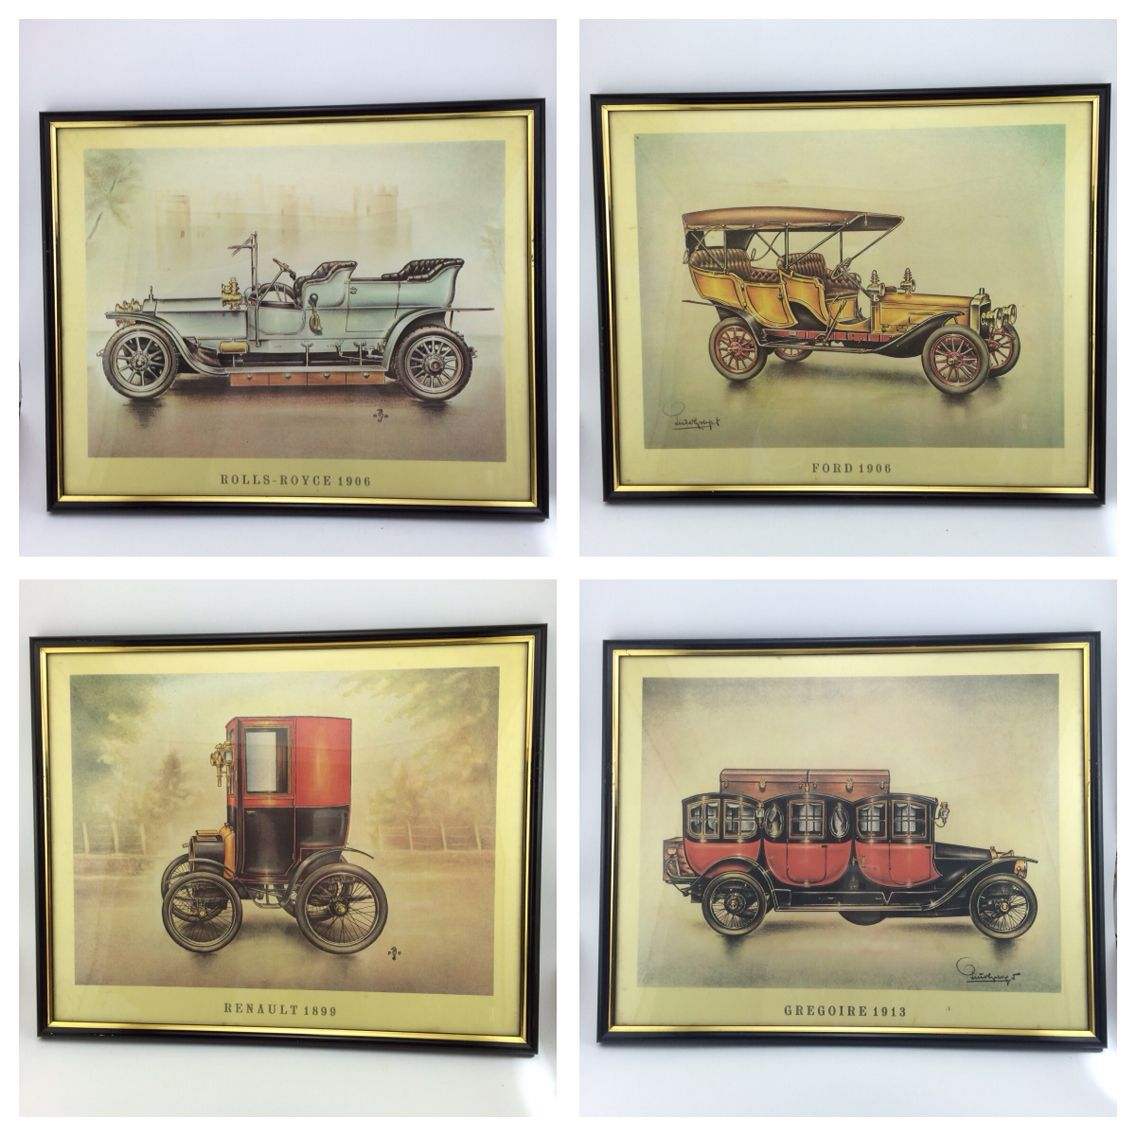 German Vintage Car Prints Amazing collection of 10/20 prints handed out as an incentive to buy fuel at their stations